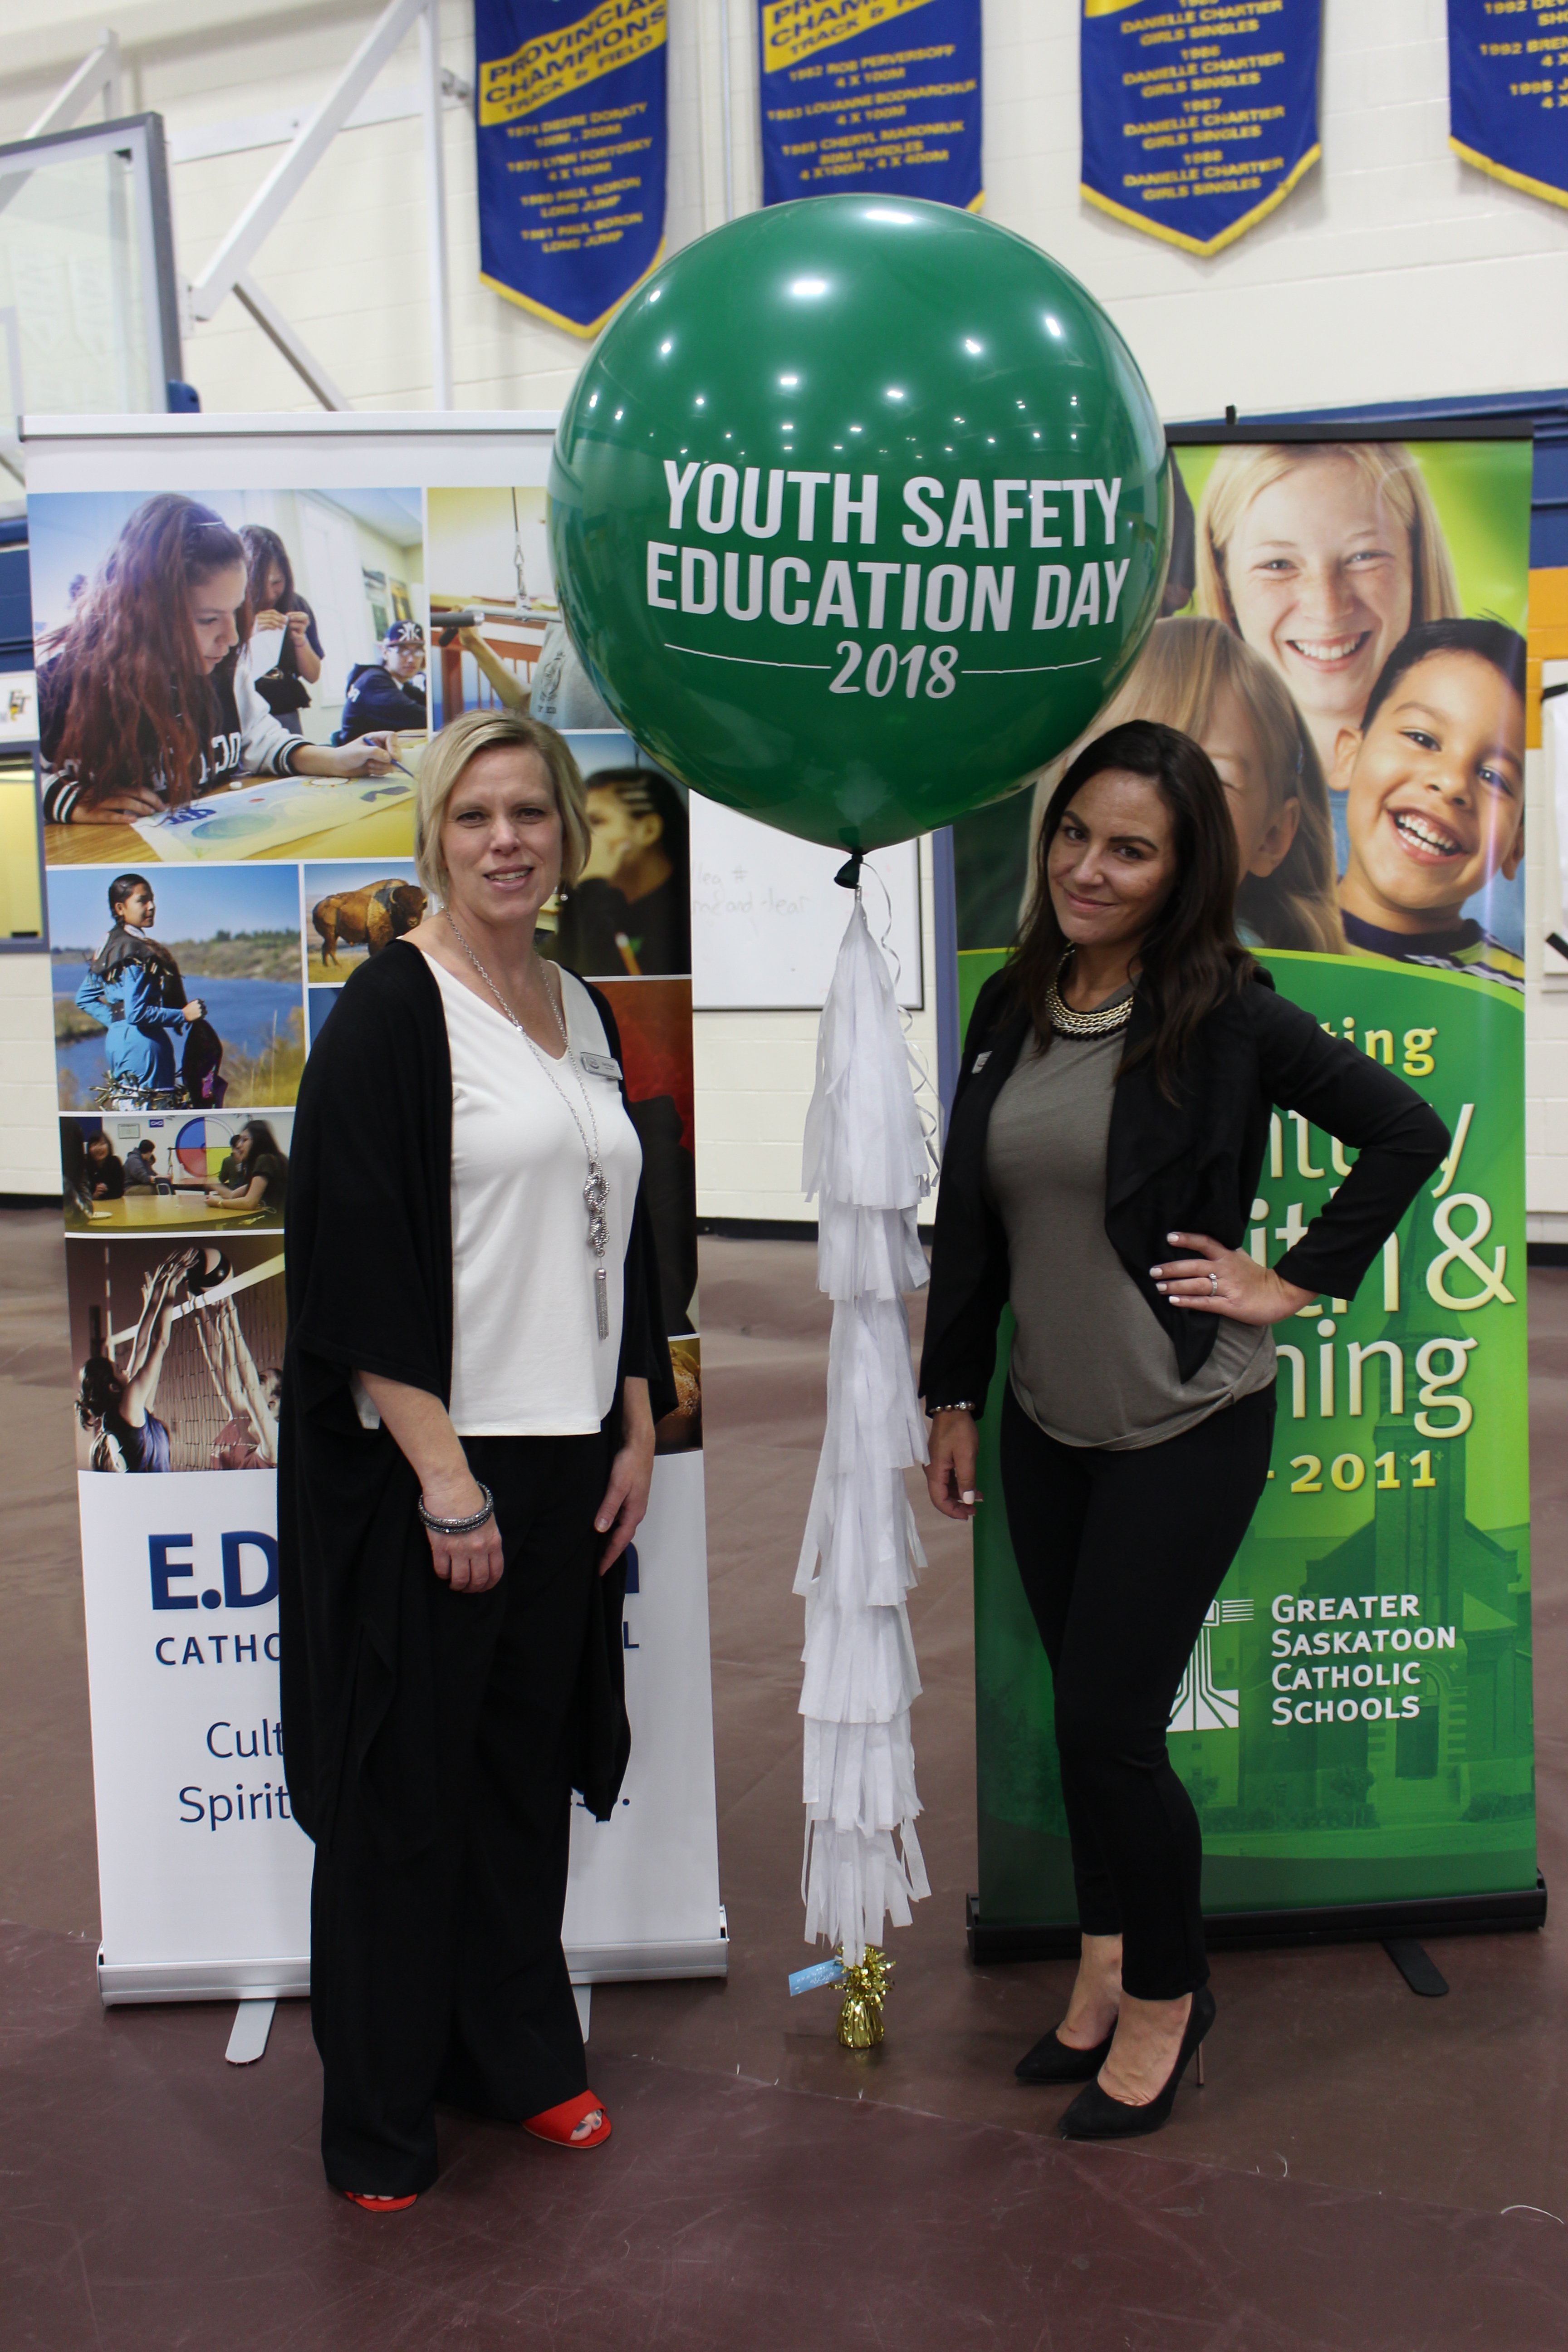 Youth Safety Education Day 2018 Recap! | Service Hospitality